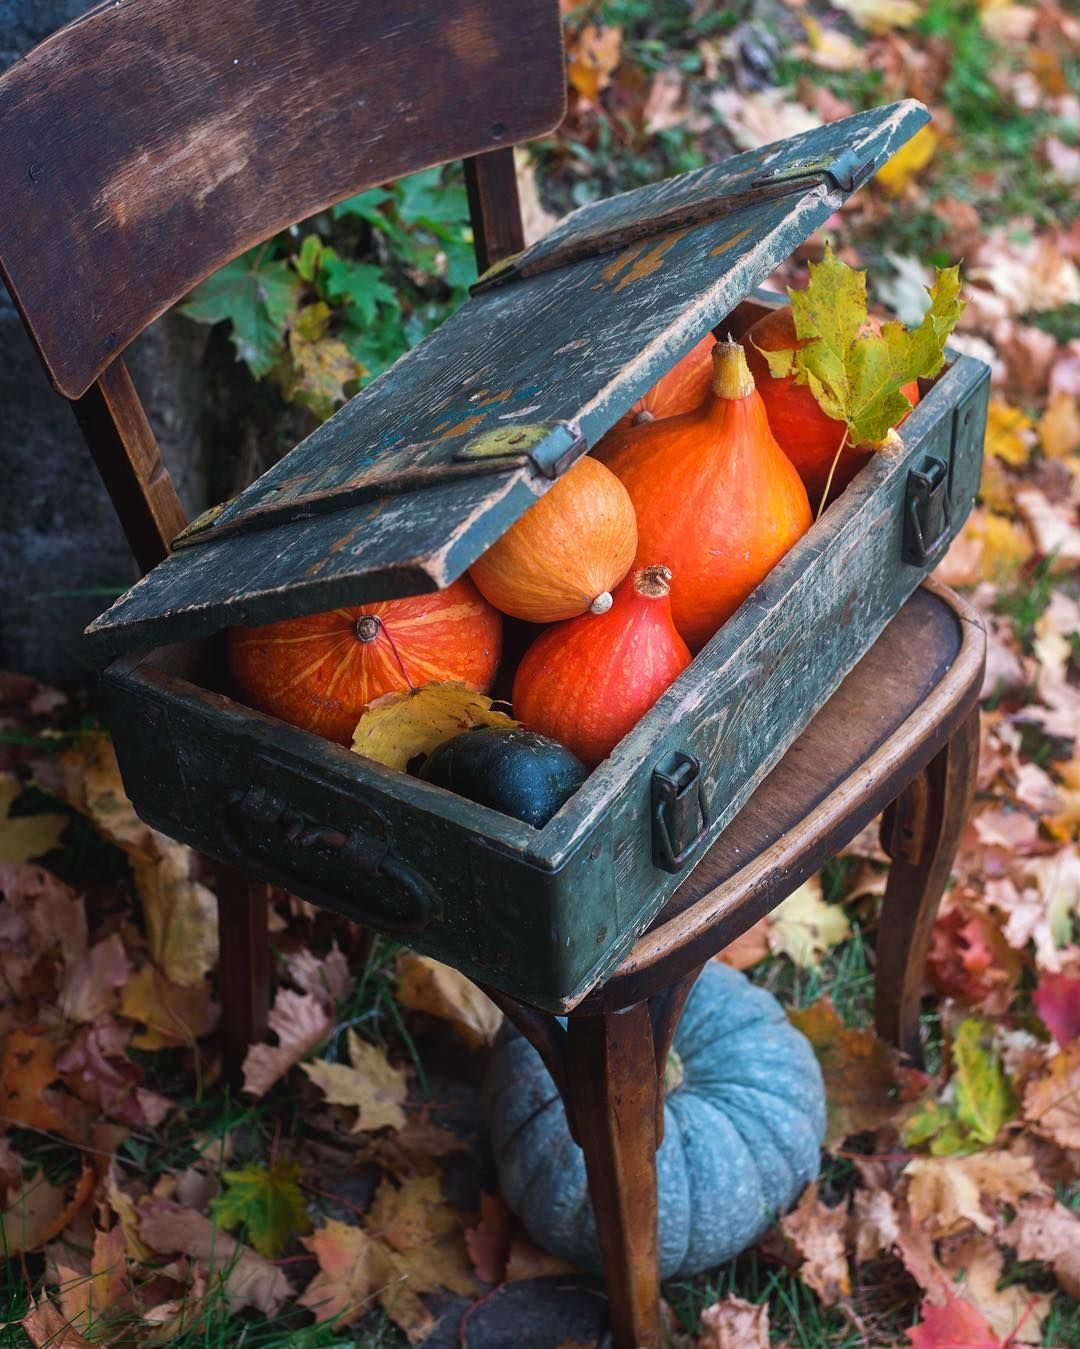 14 Unusual Pumpkins For Fall Decorating (And Eating, Too